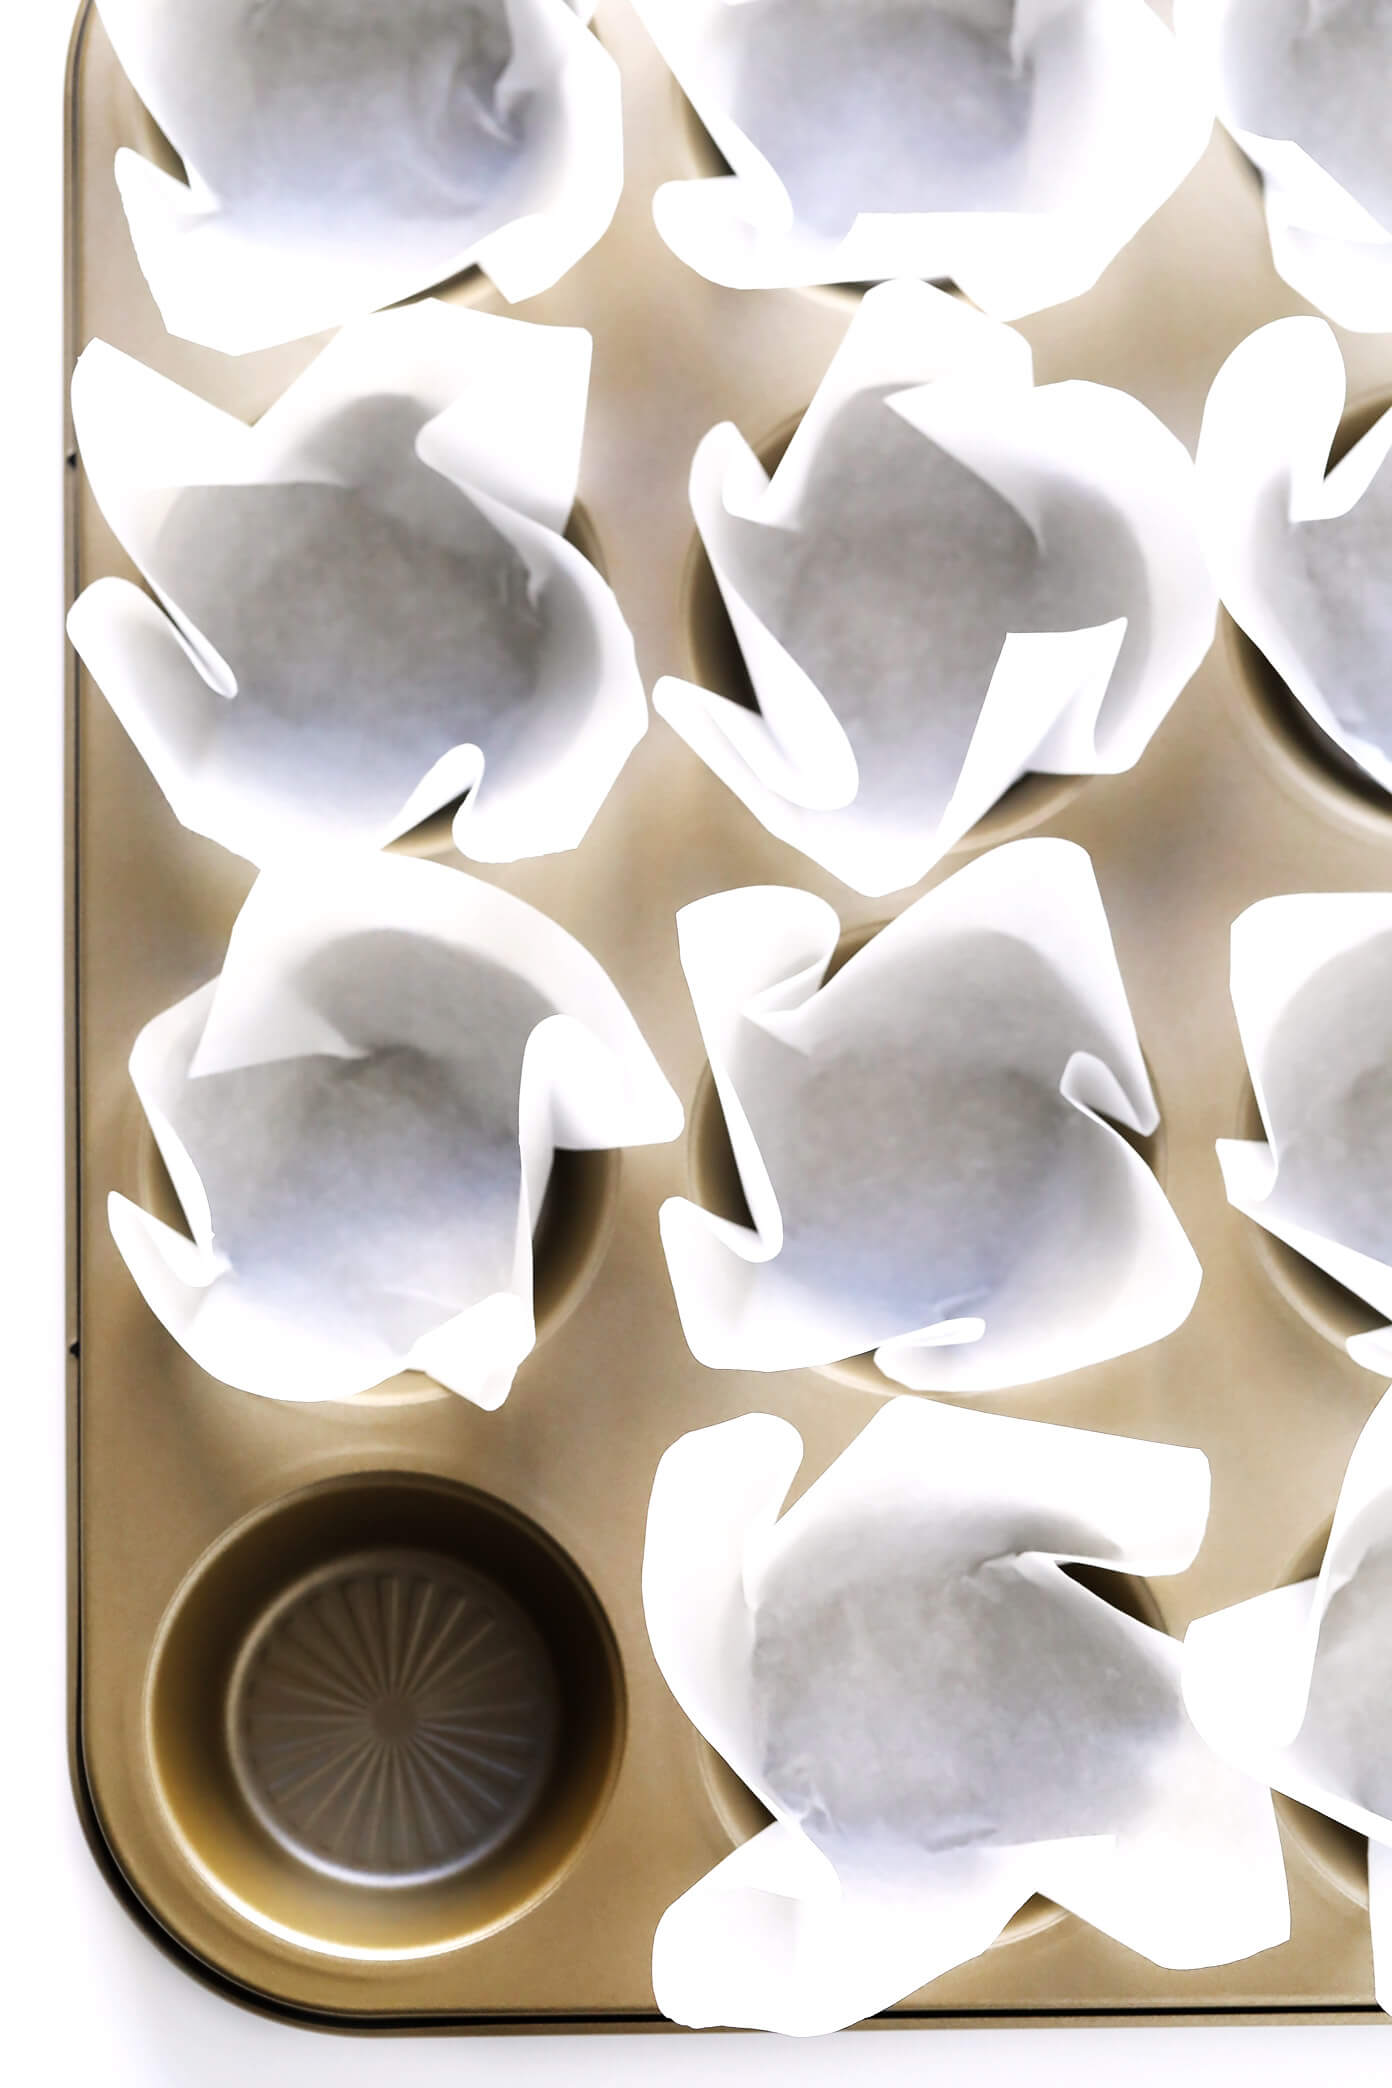 How To Make Cupcake Liners With Parchment Paper